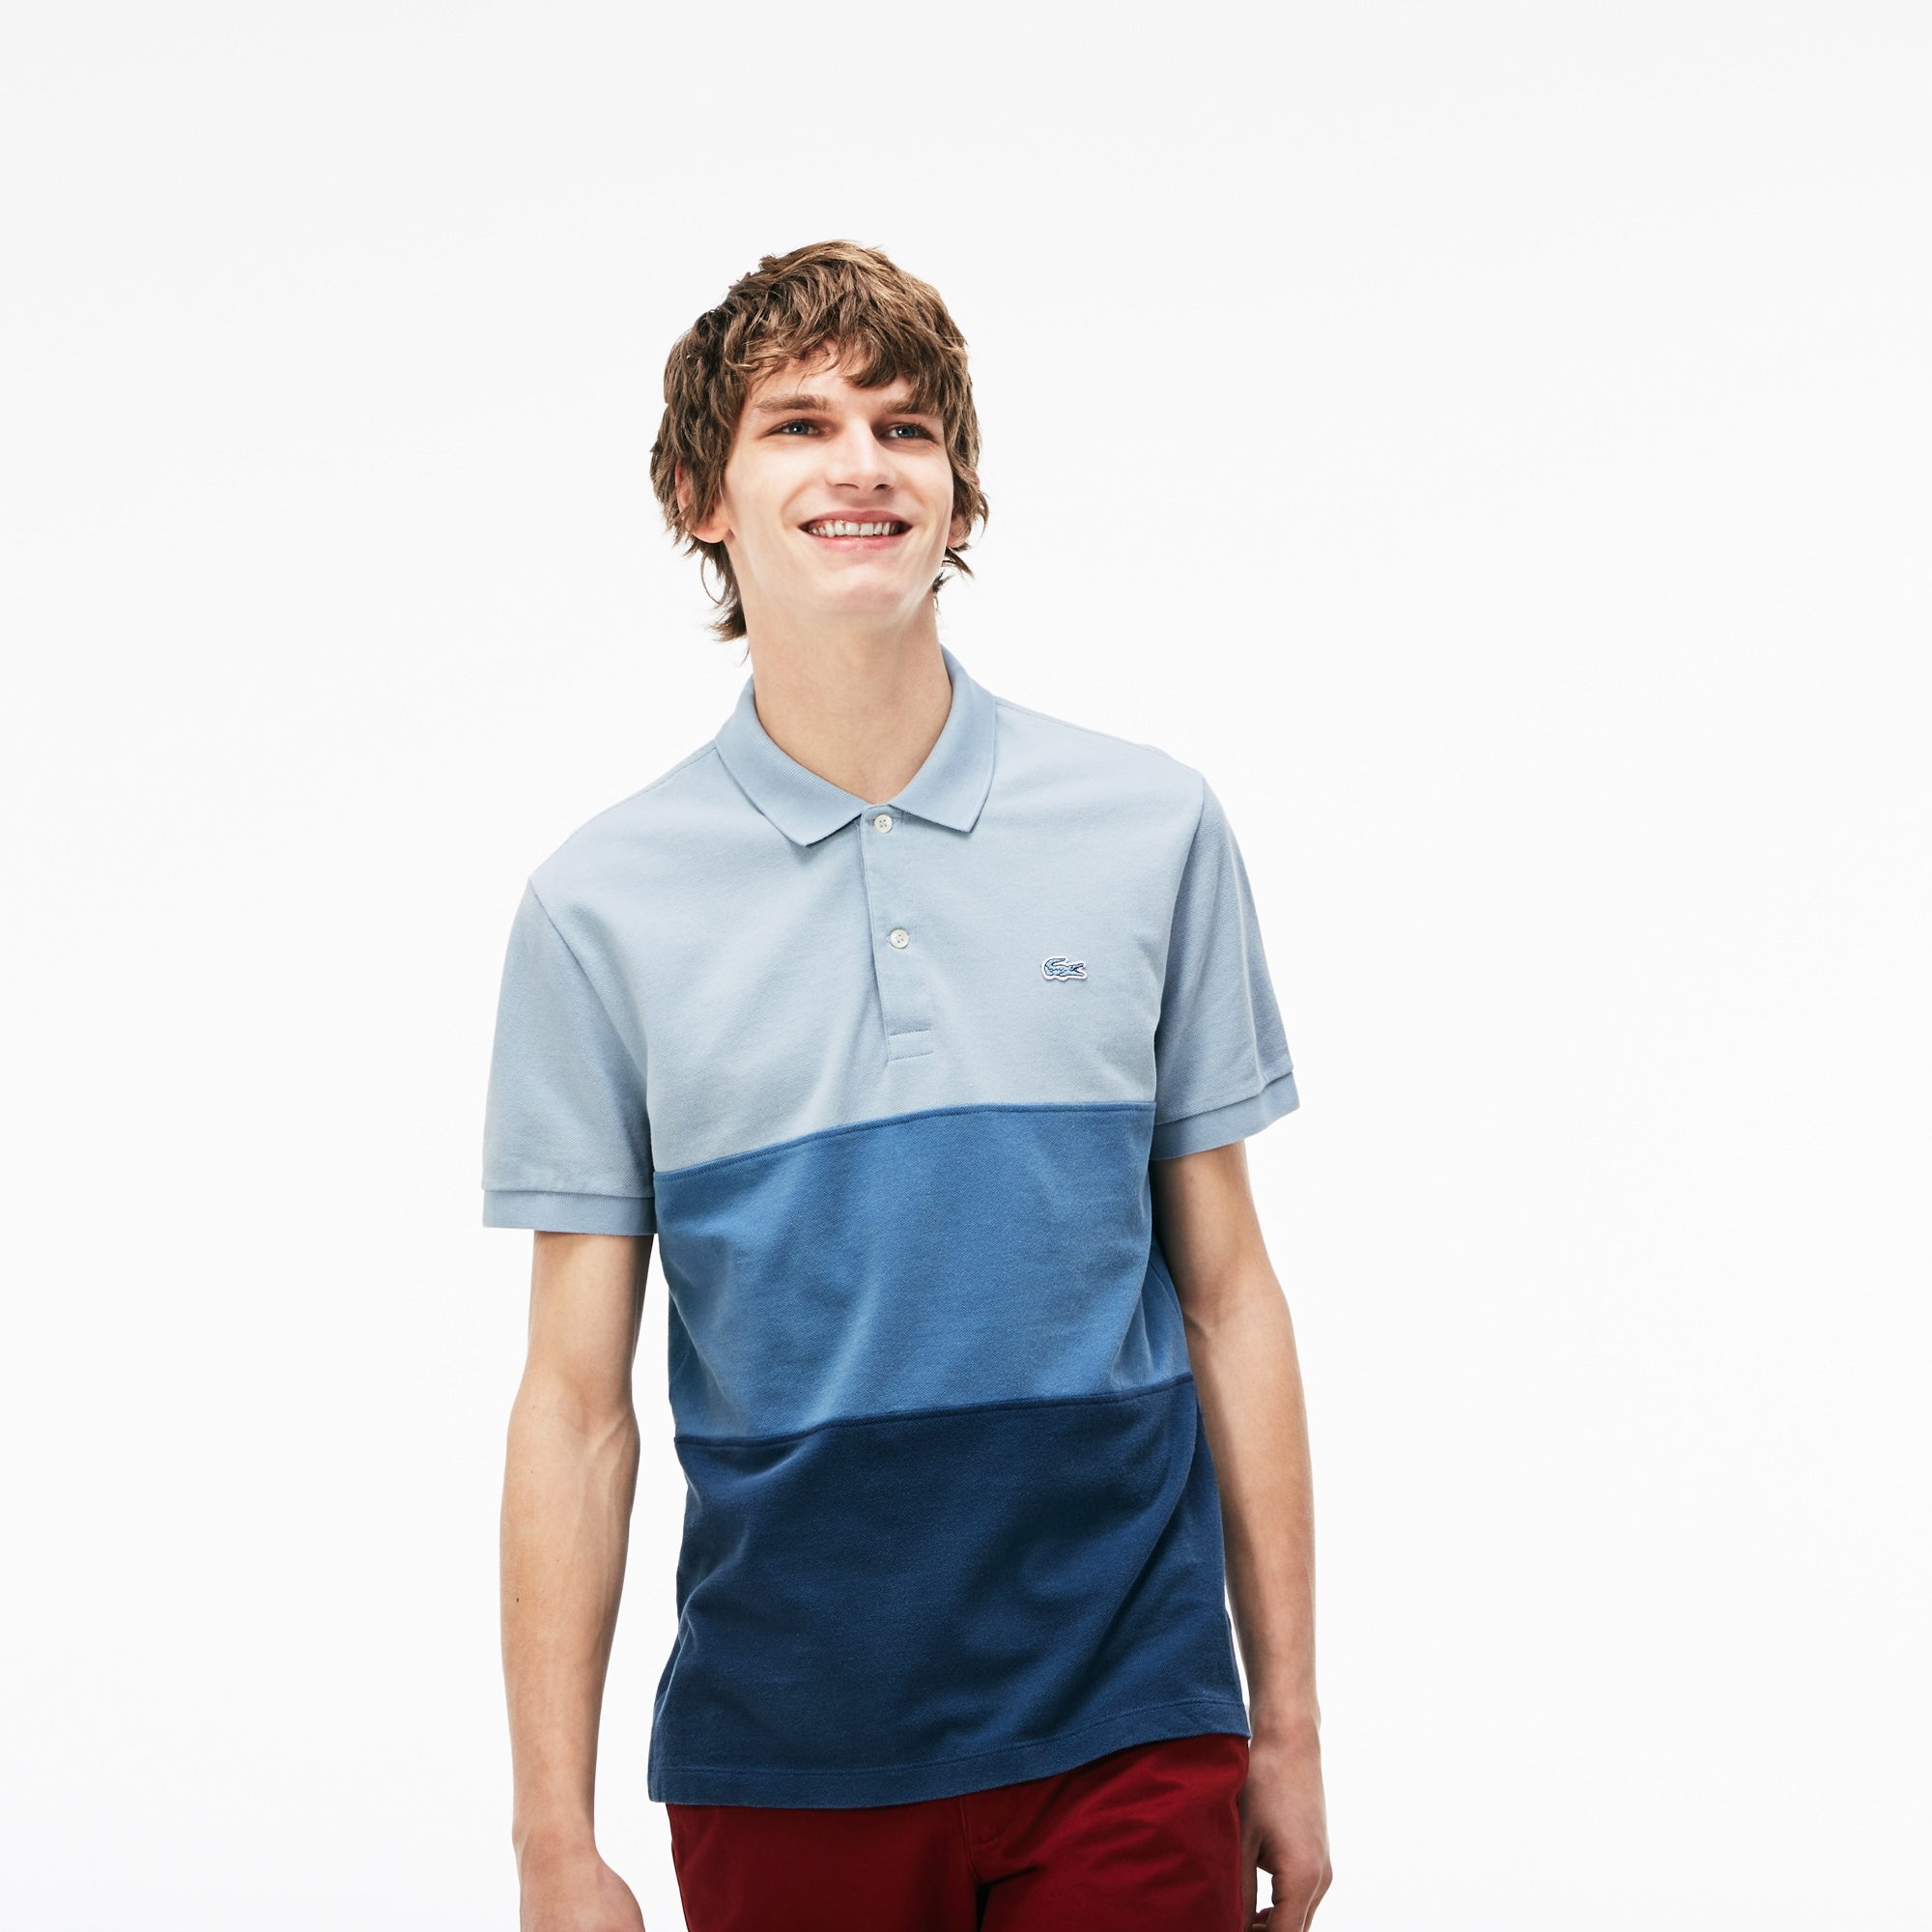 72d908297bb3ad + 1 color. 40% off. Men s Regular Fit Colorblock Petit Piqué Polo